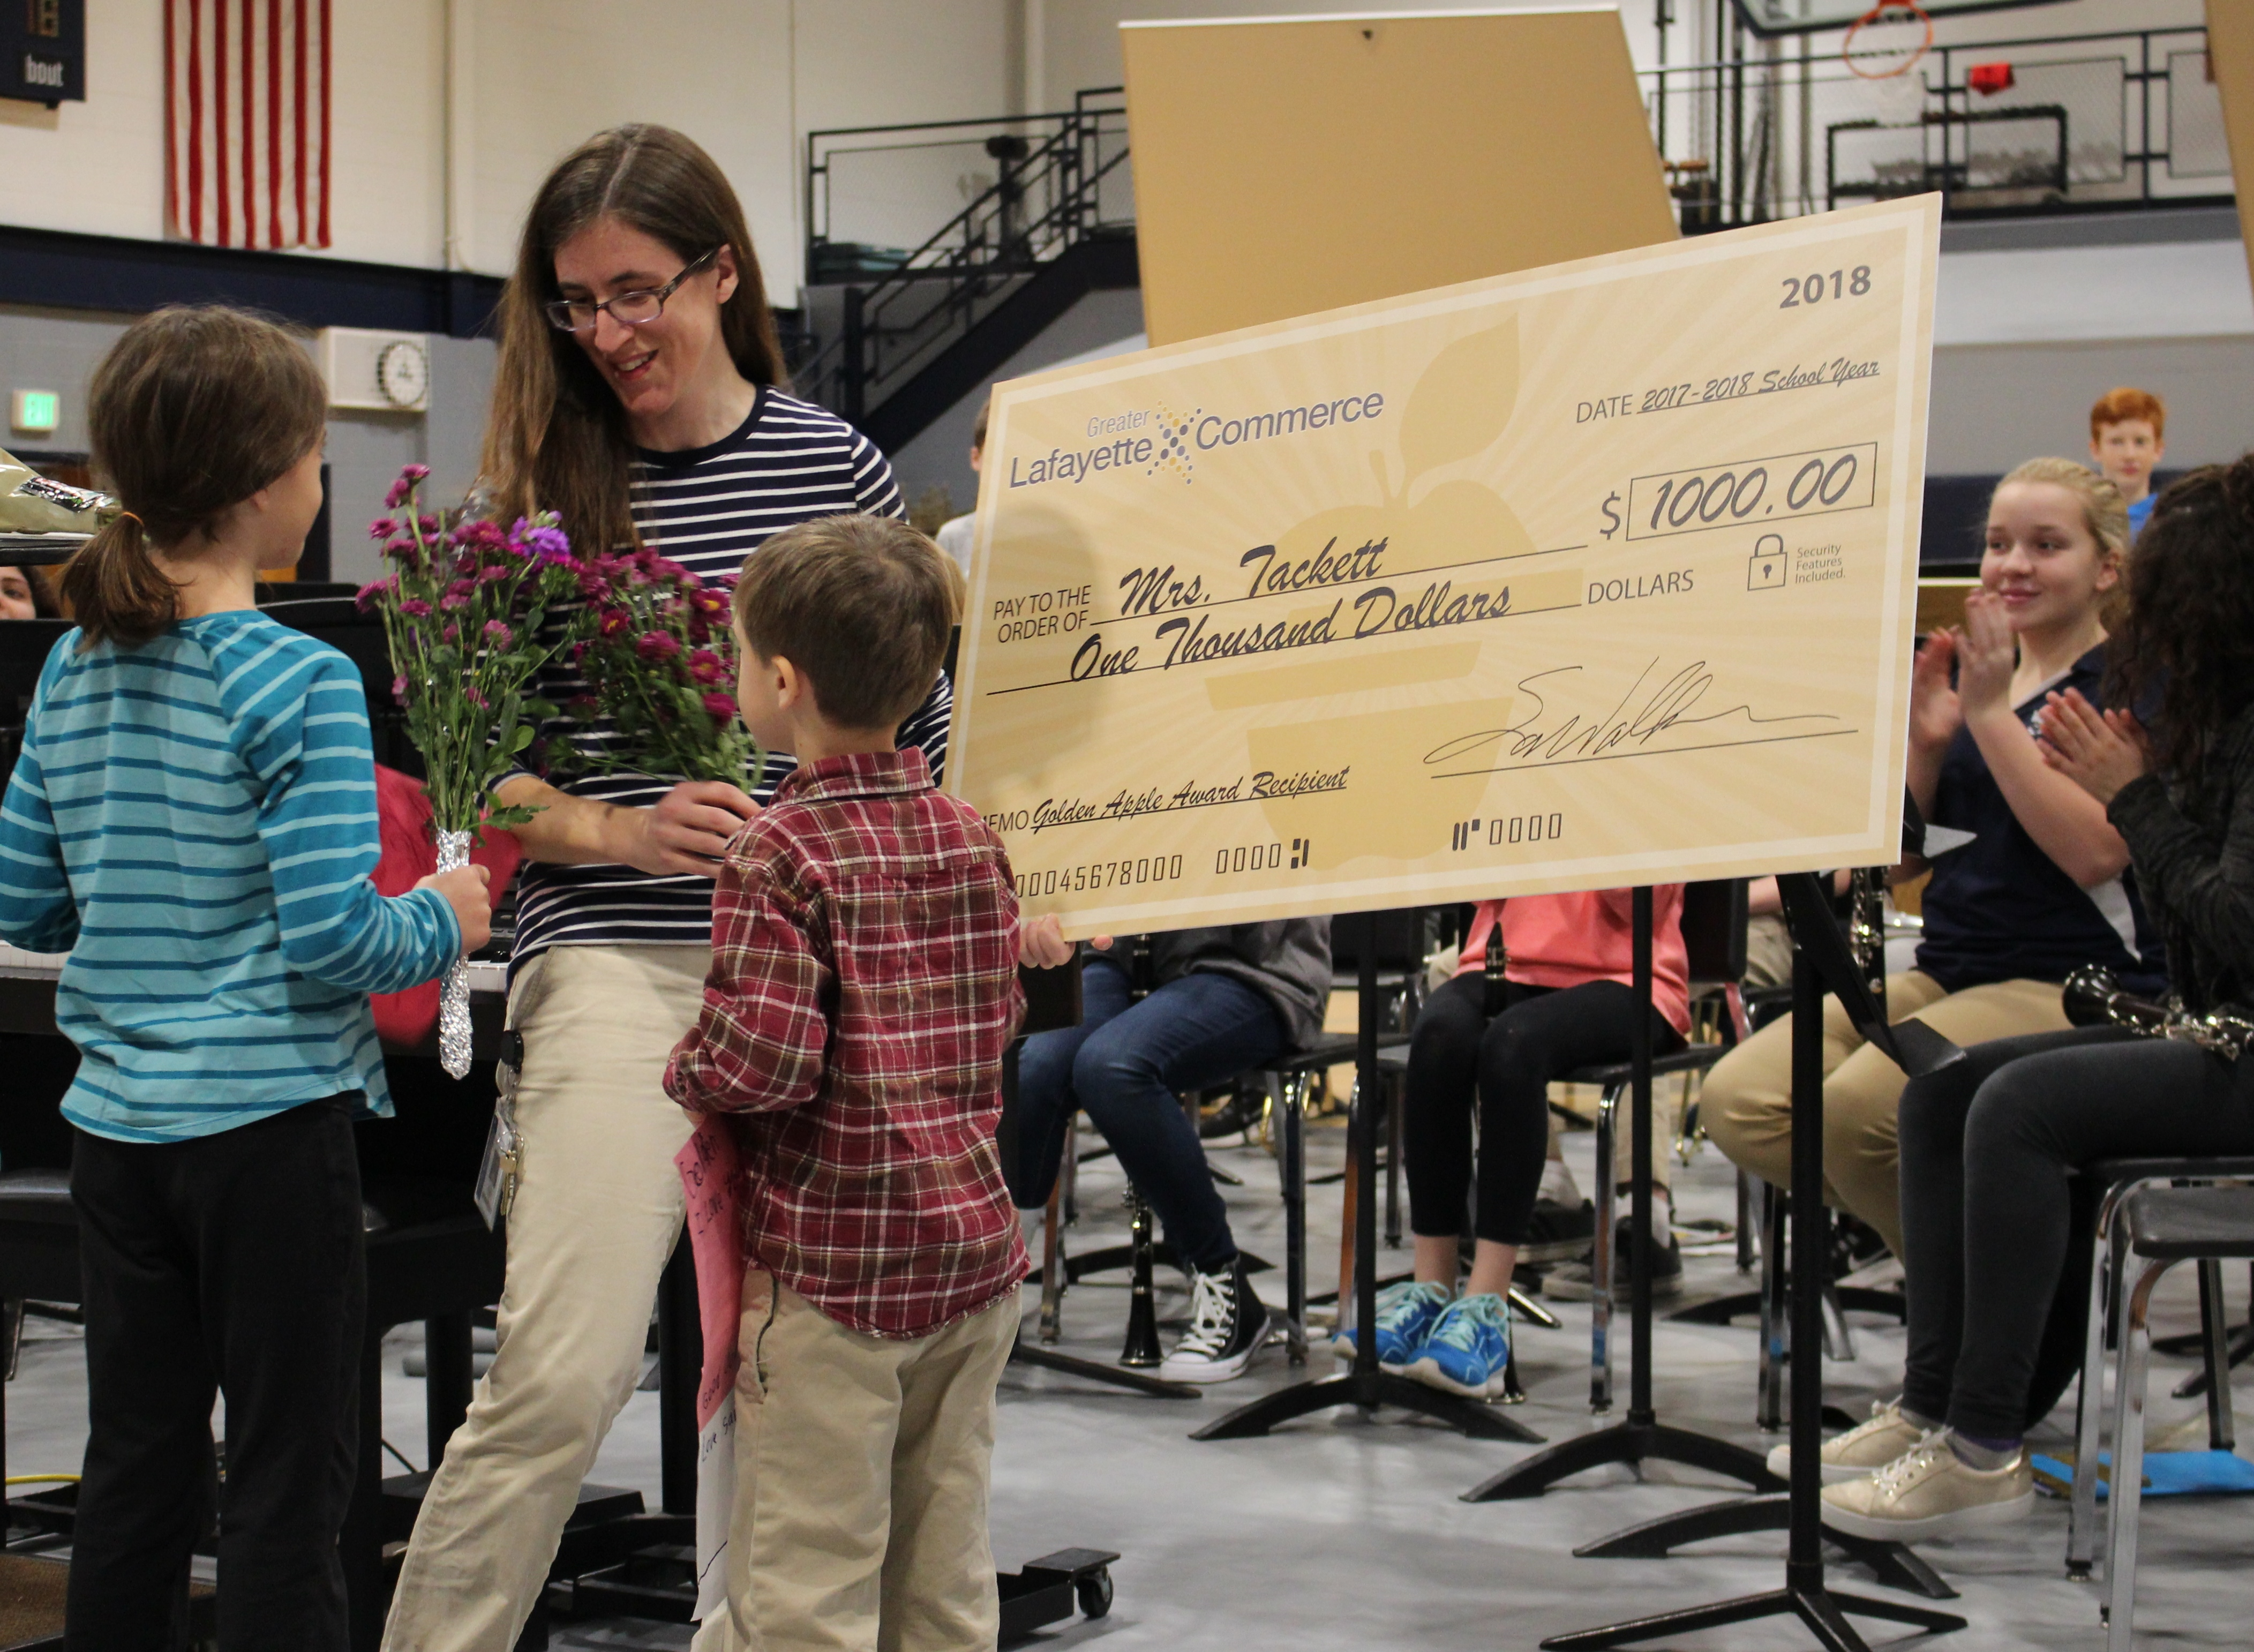 Katherine Tackett receives flowers from her children when she learns she won a Golden Apple award.